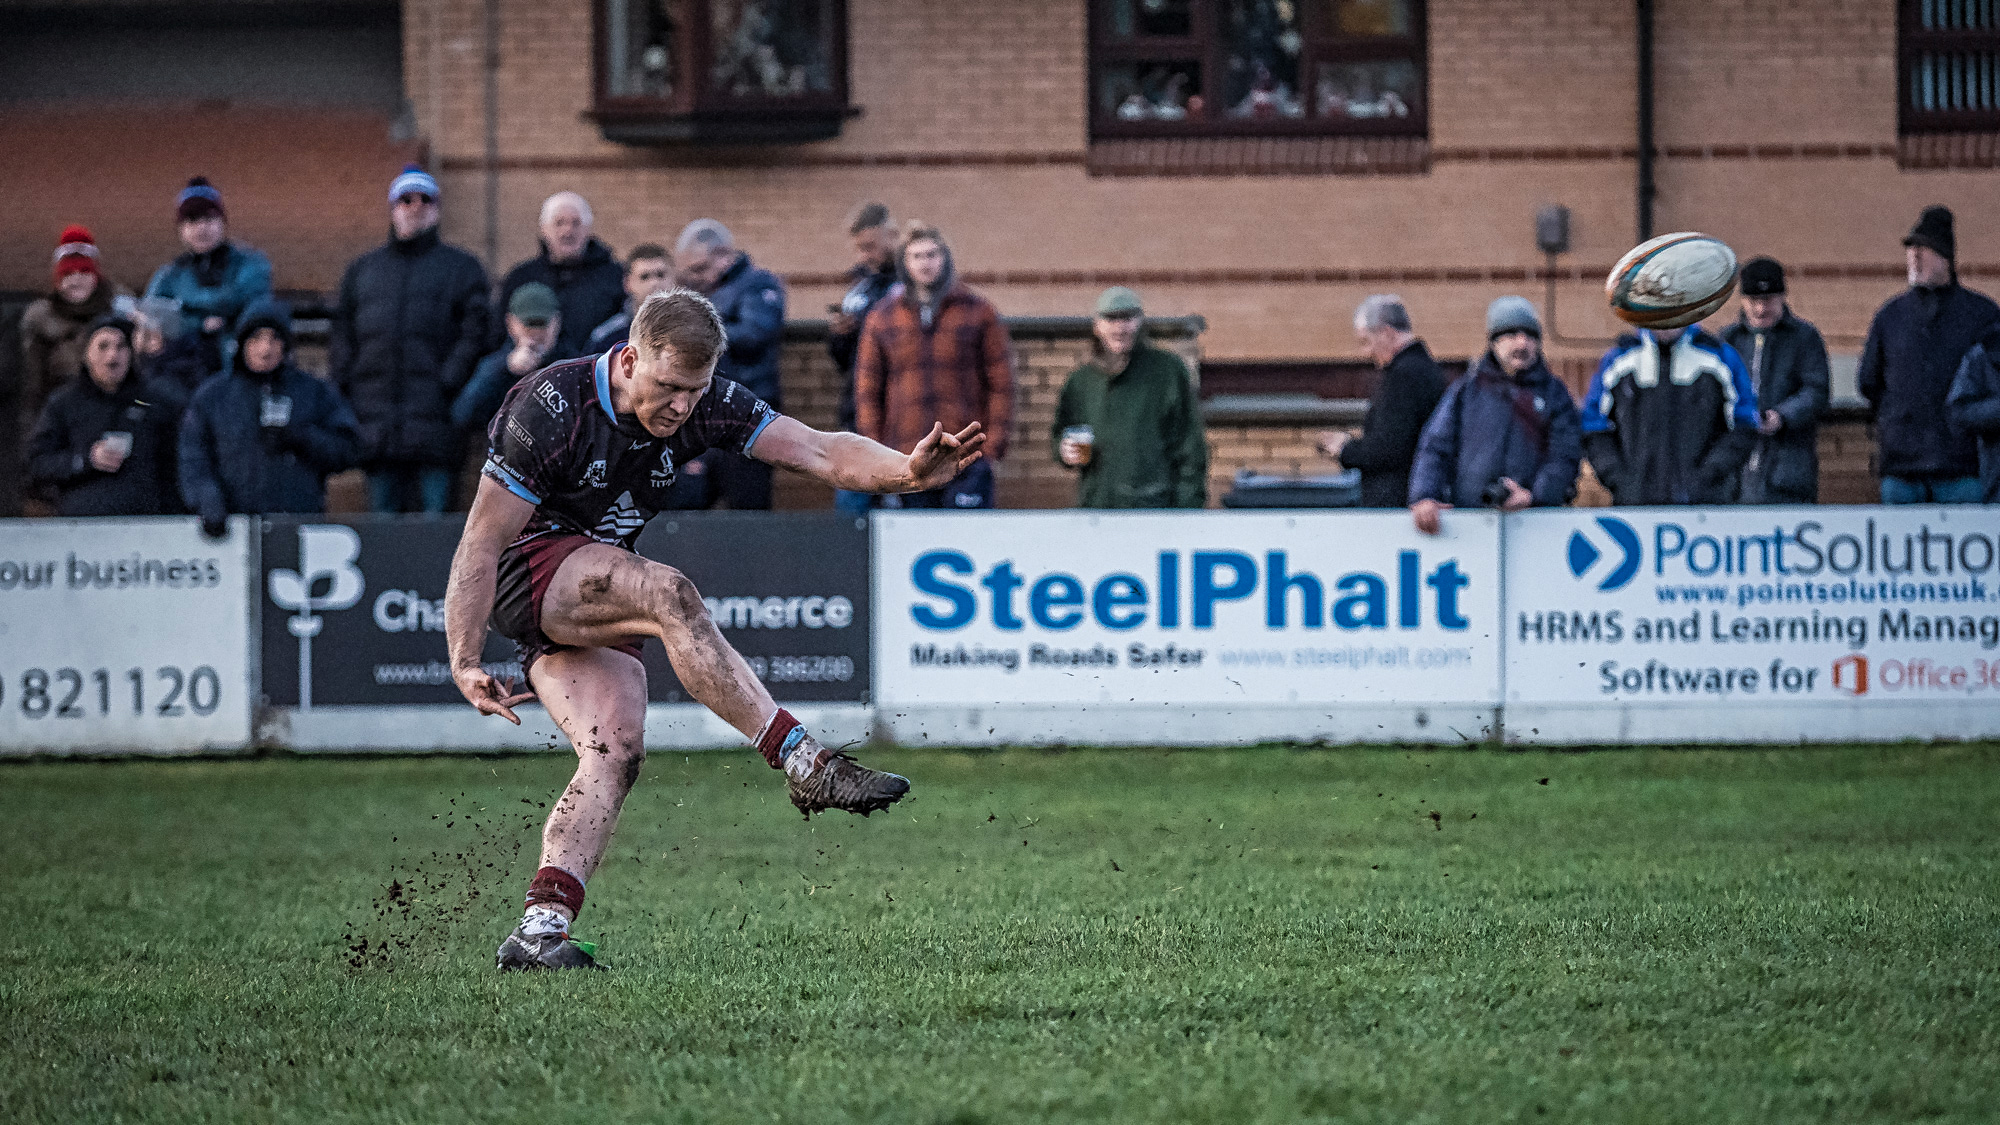 Great kicking - 10 points added during the afternoon by Alex Dolly made all the difference!